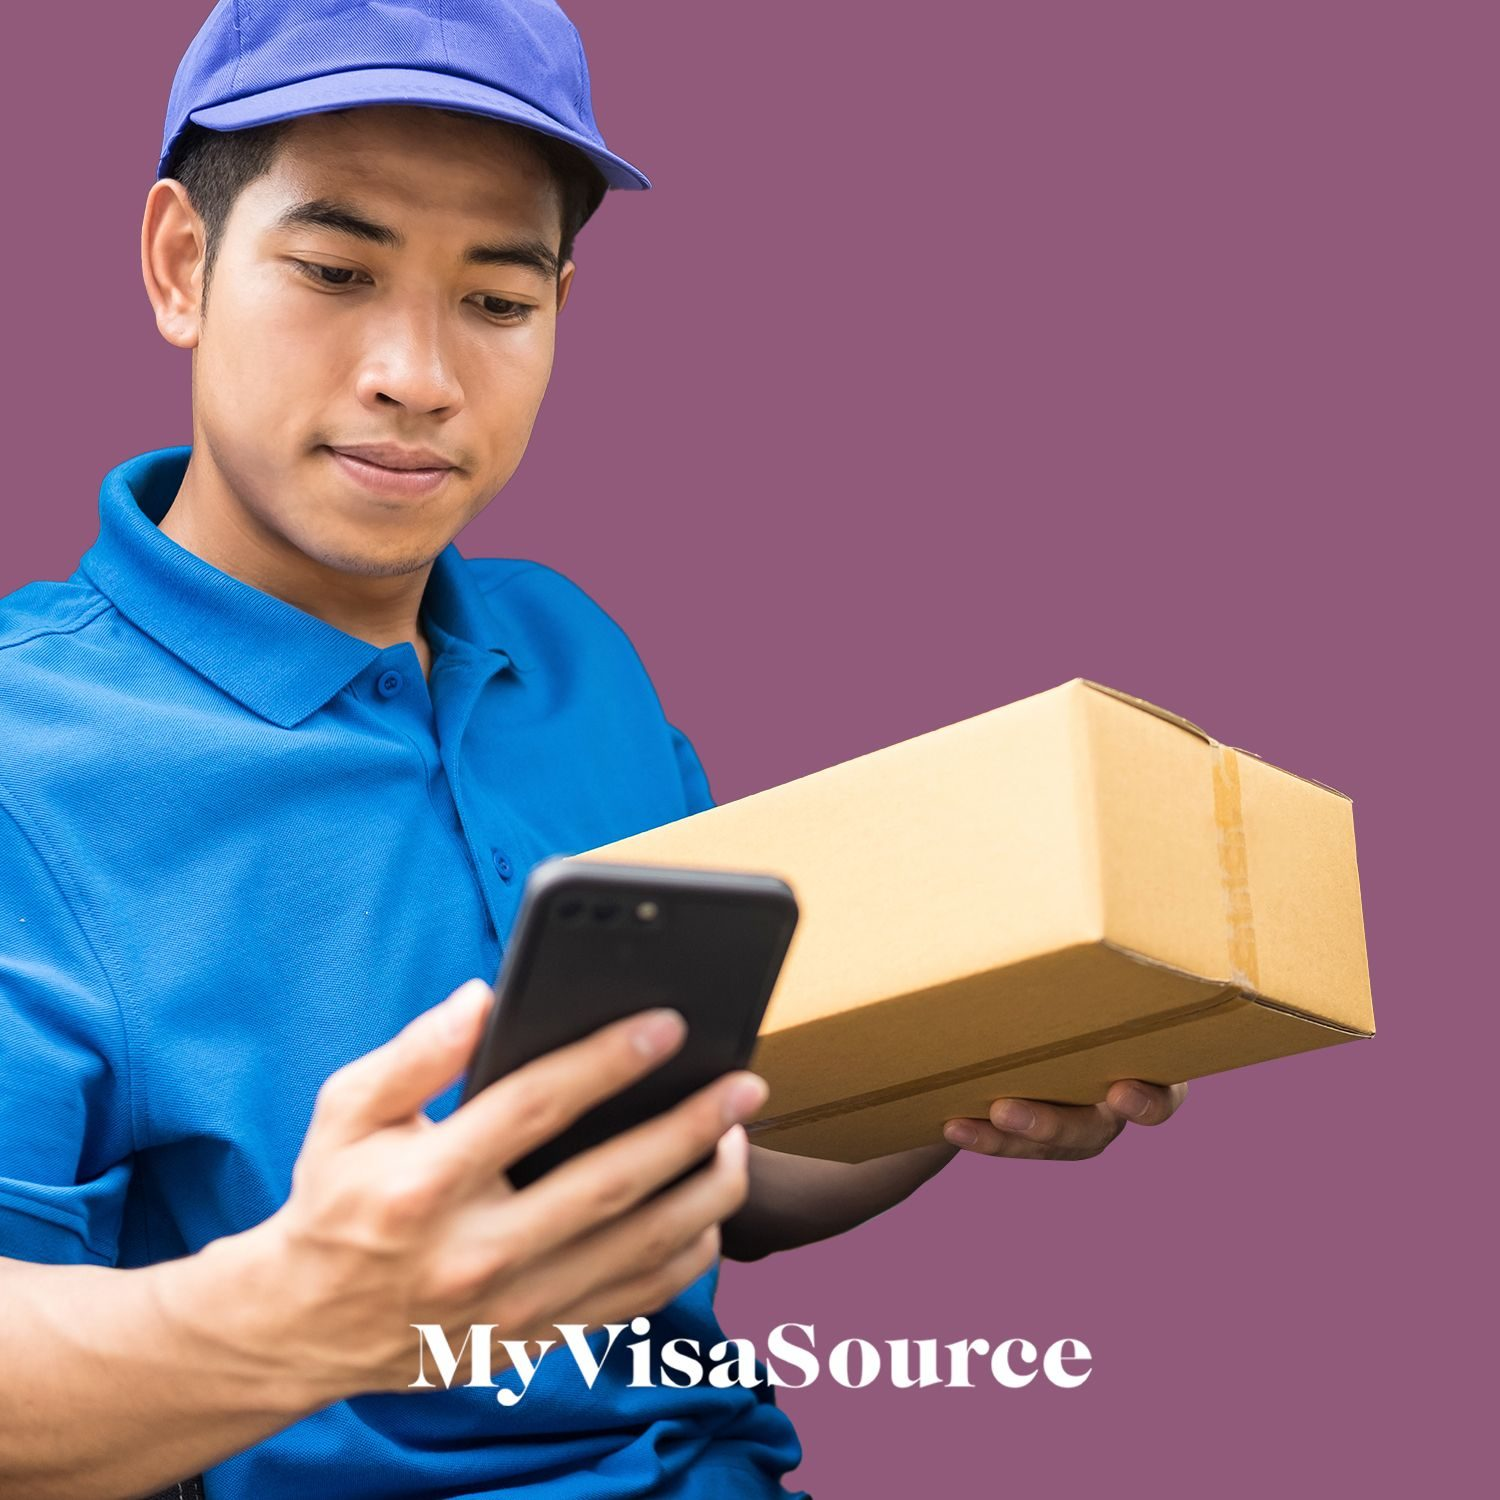 delivery worker holding a package and cellphone my visa source